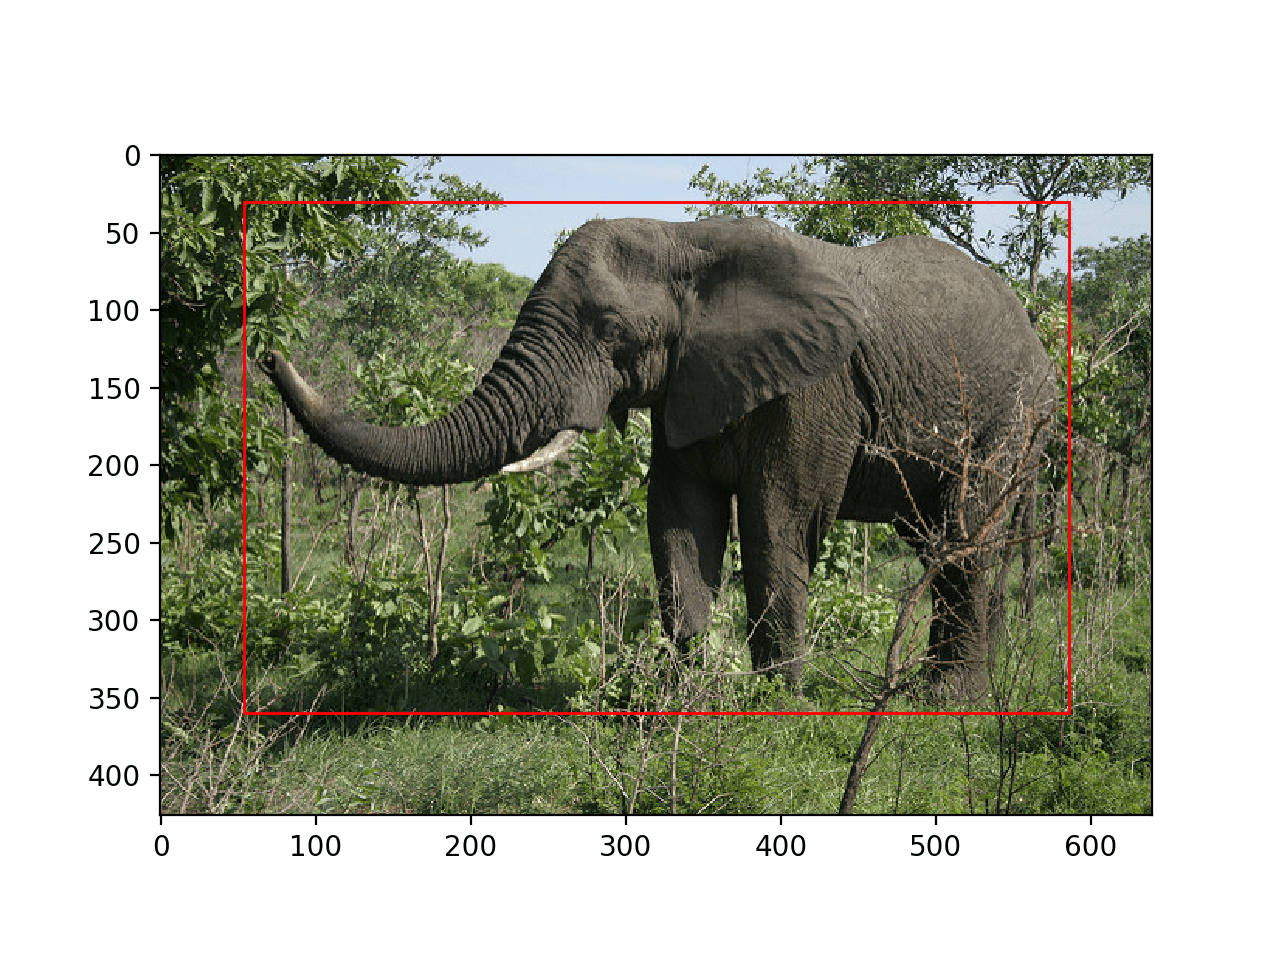 Photograph of an Elephant With All Objects Localized With a Bounding Box